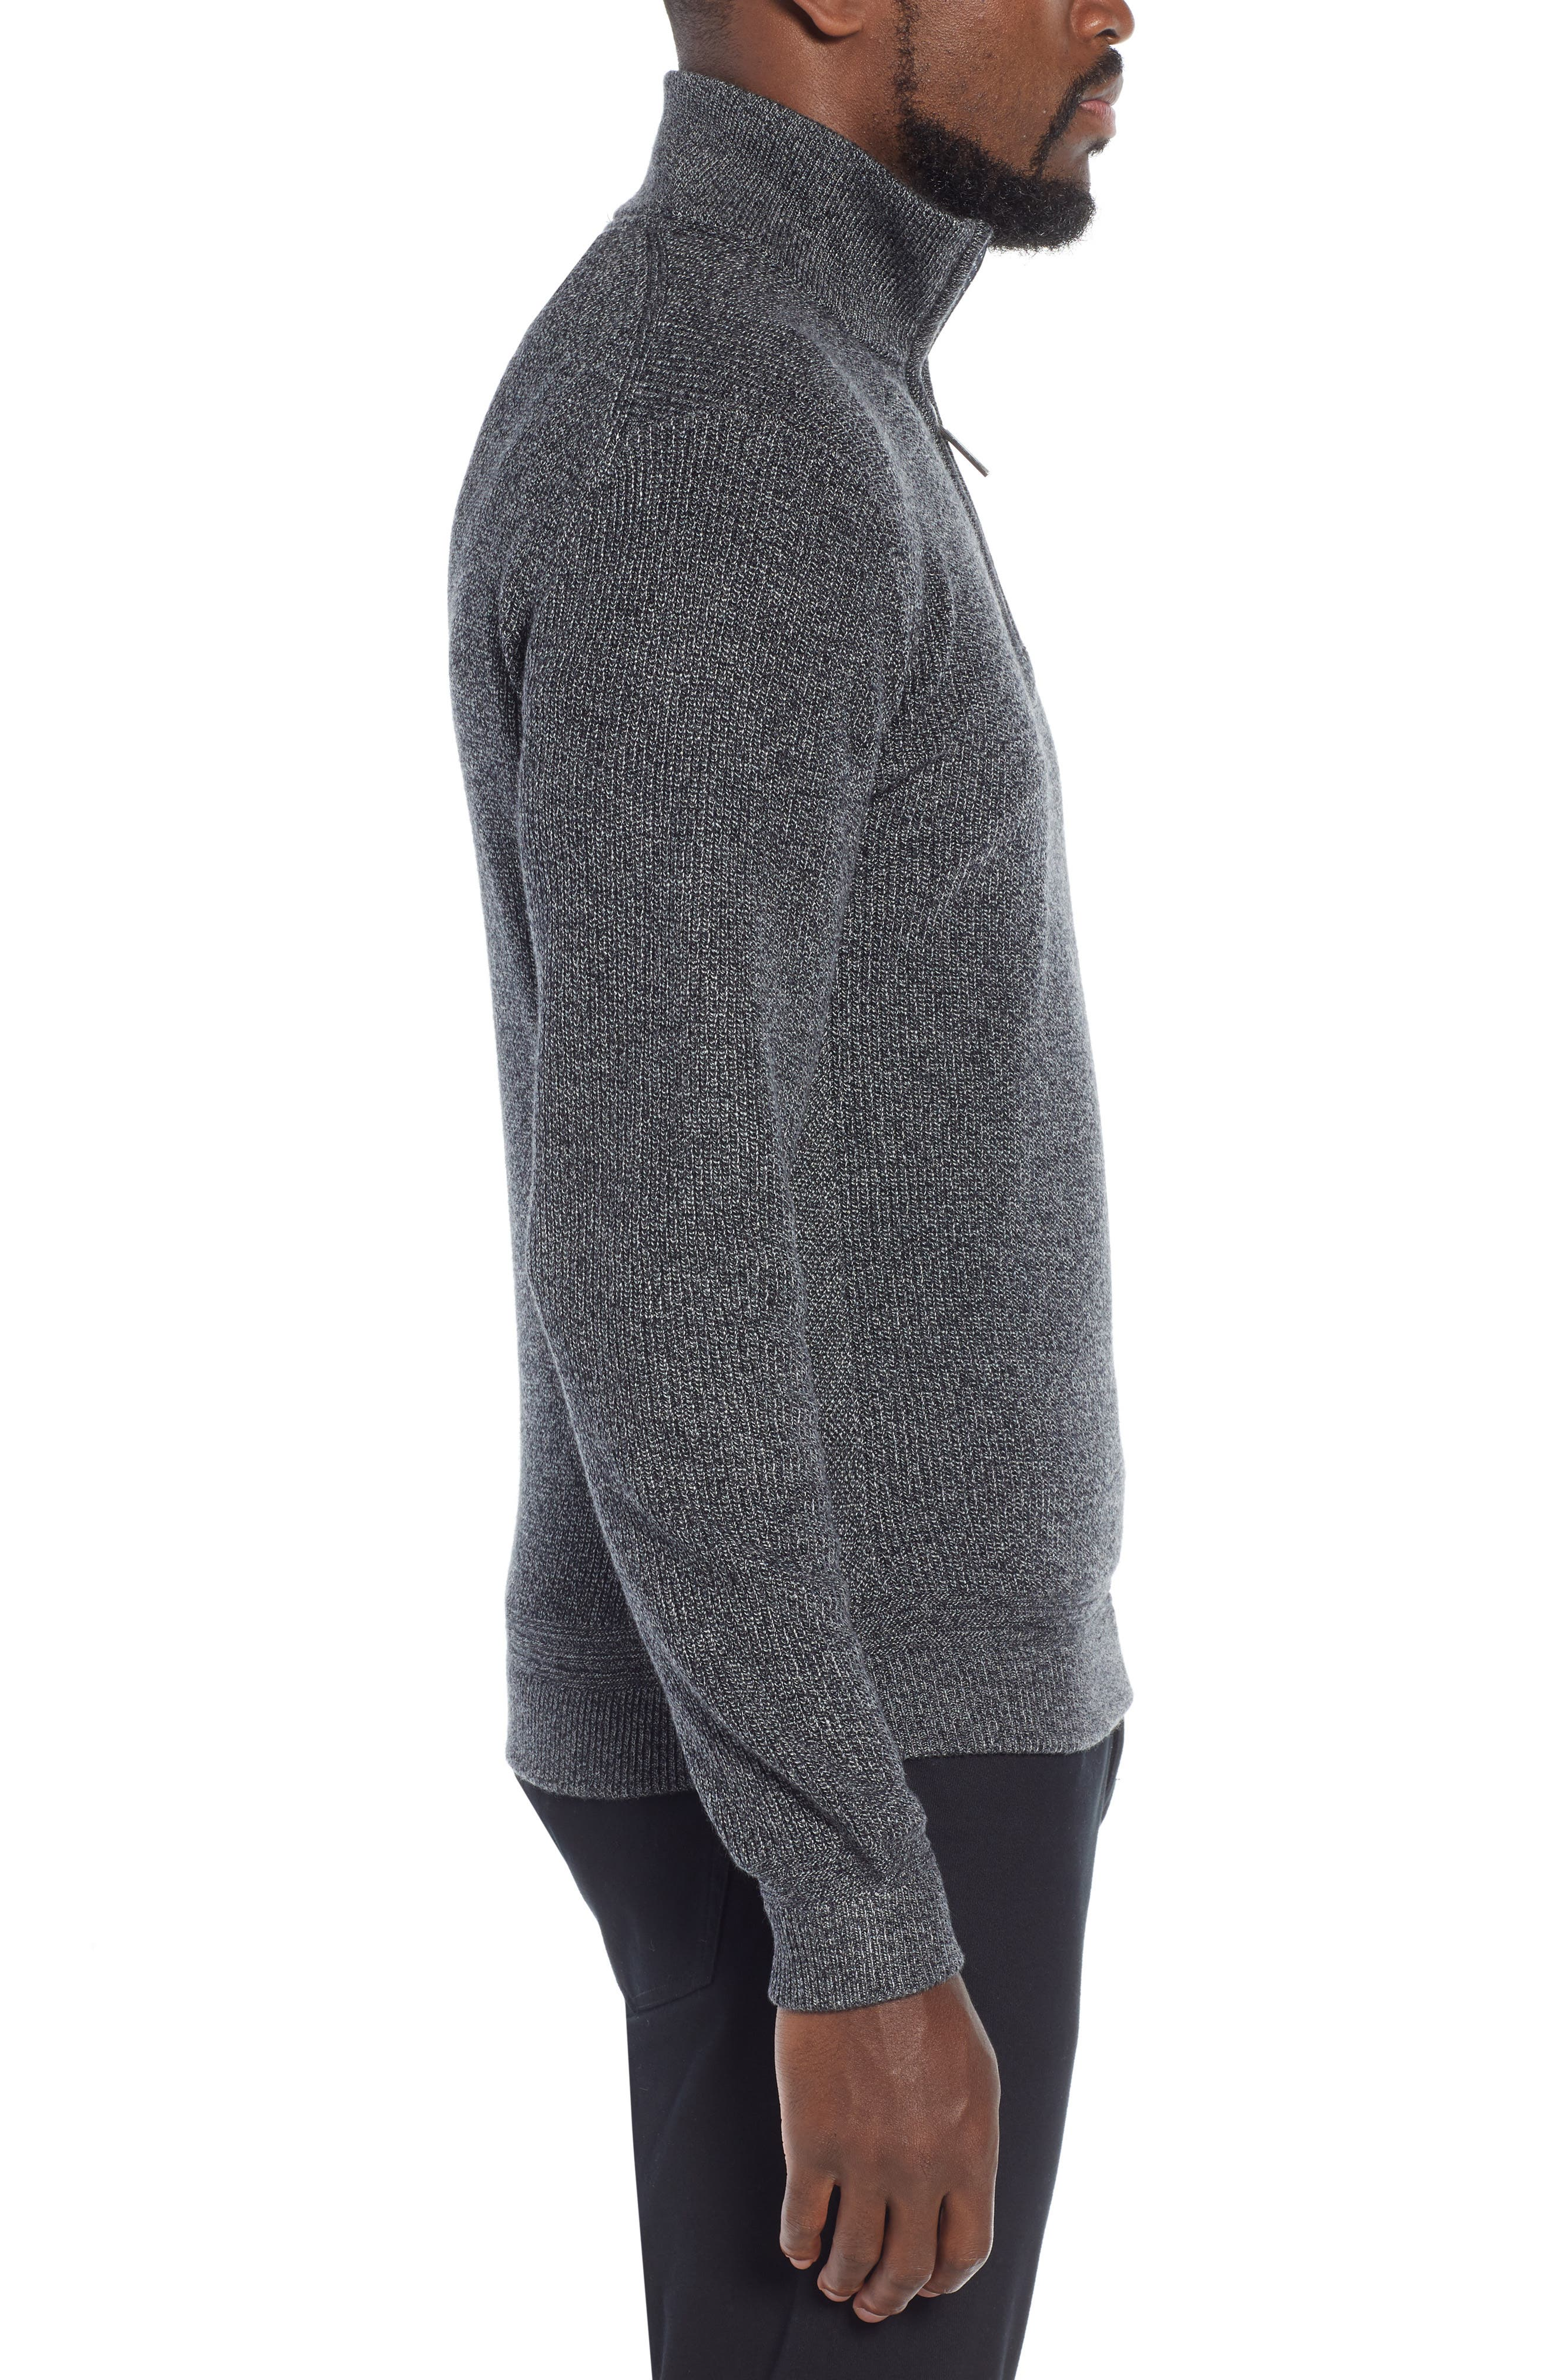 Lohas Slim Fit Funnel Neck Sweater,                             Alternate thumbnail 3, color,                             CHARCOAL